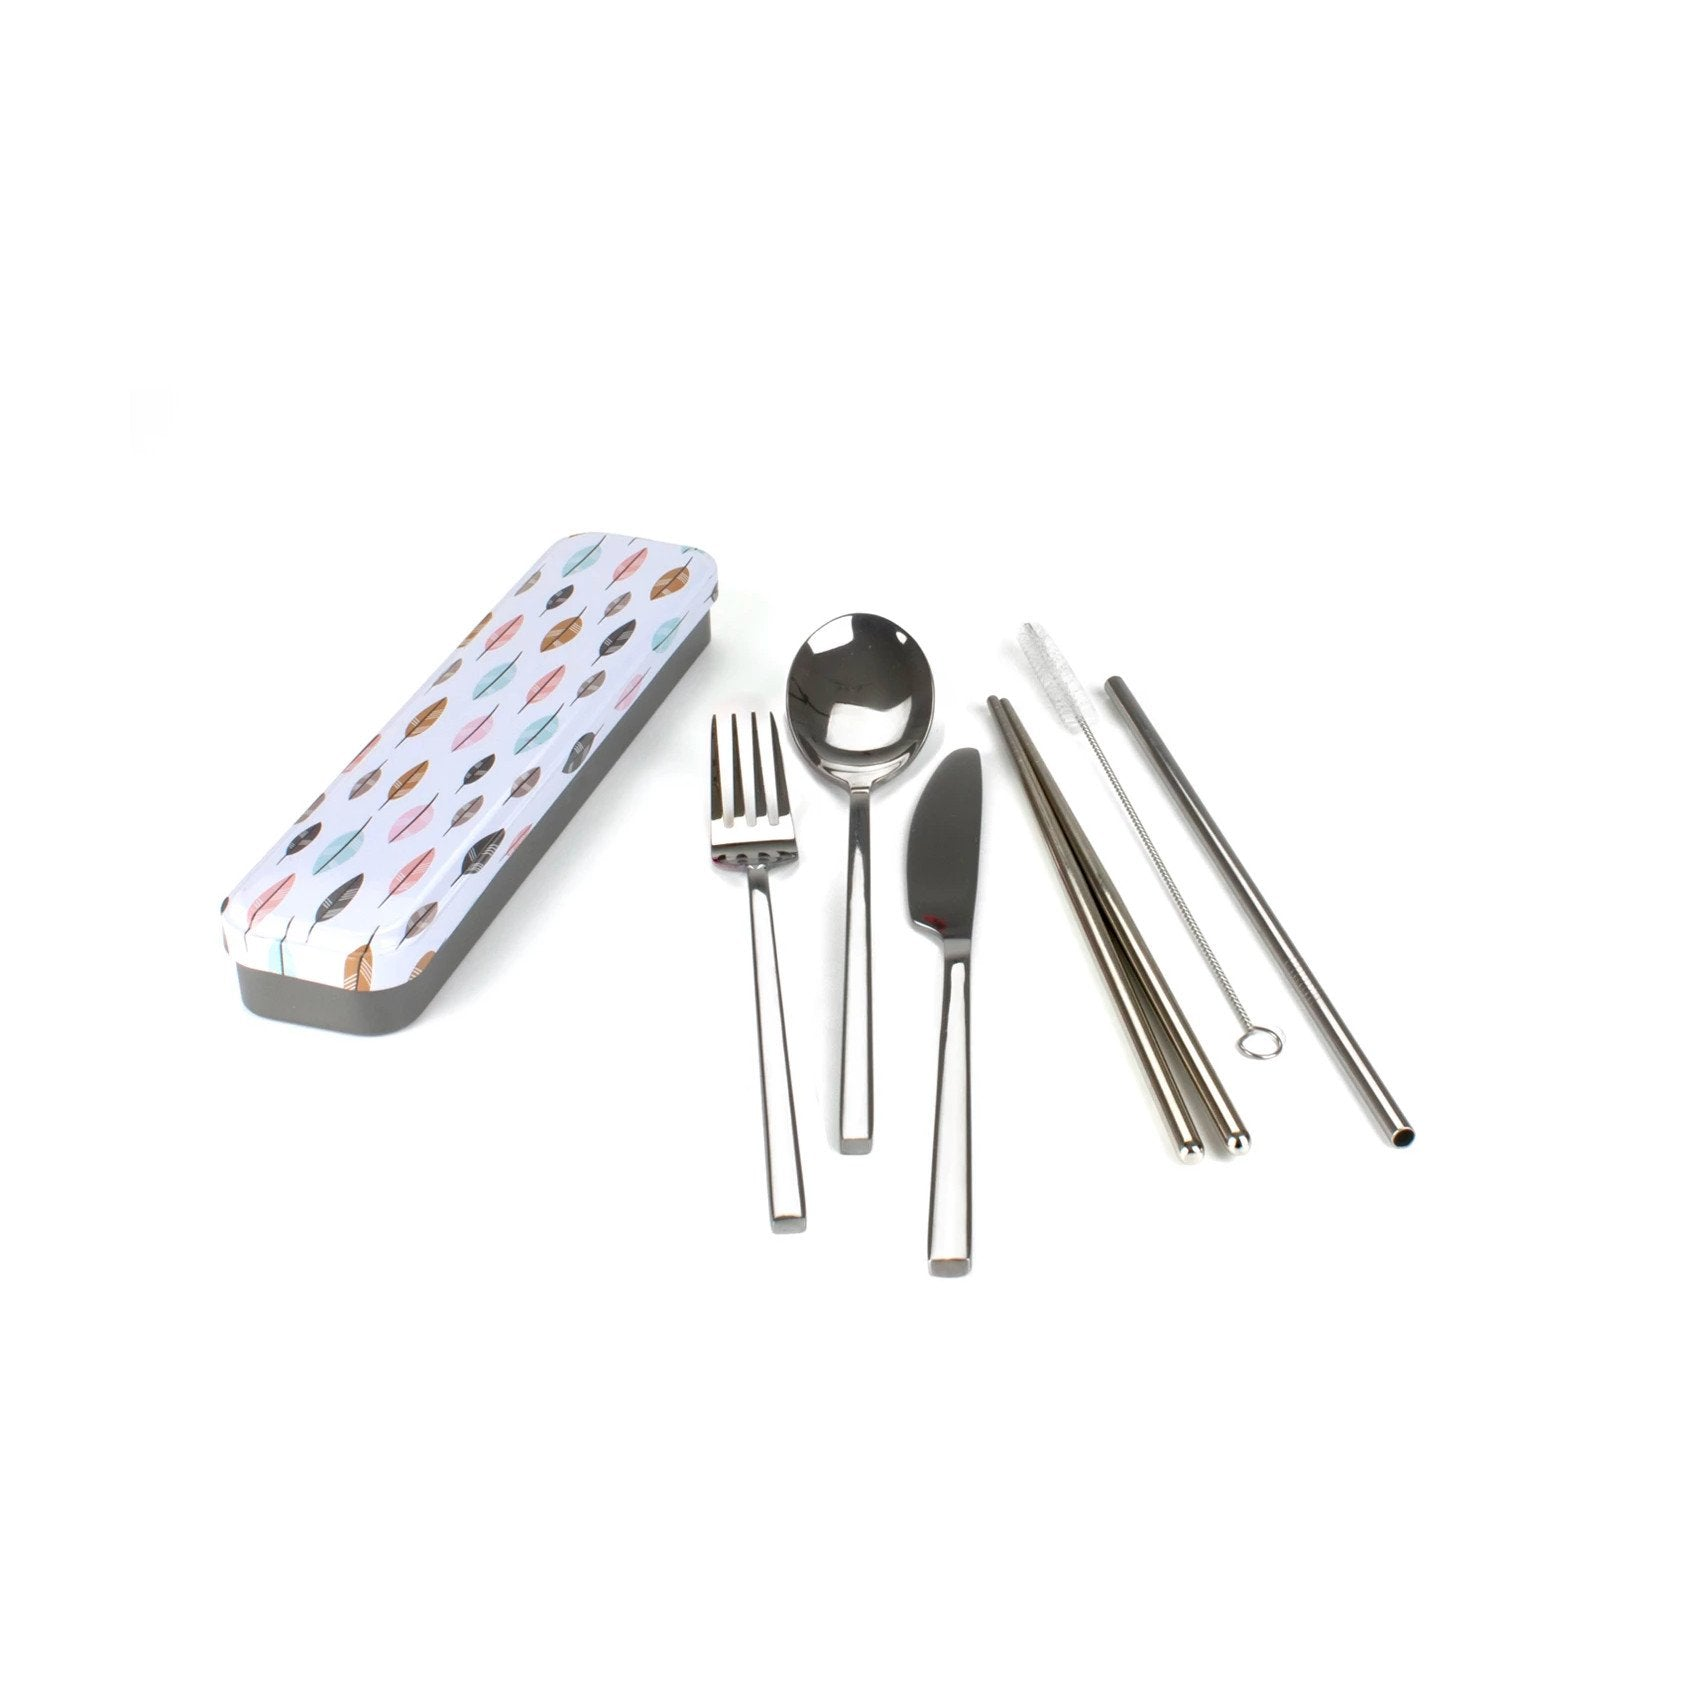 Reusable Cutlery Travel Set Retro Kitchen Lifestyle Leaves at Little Earth Nest Eco Shop